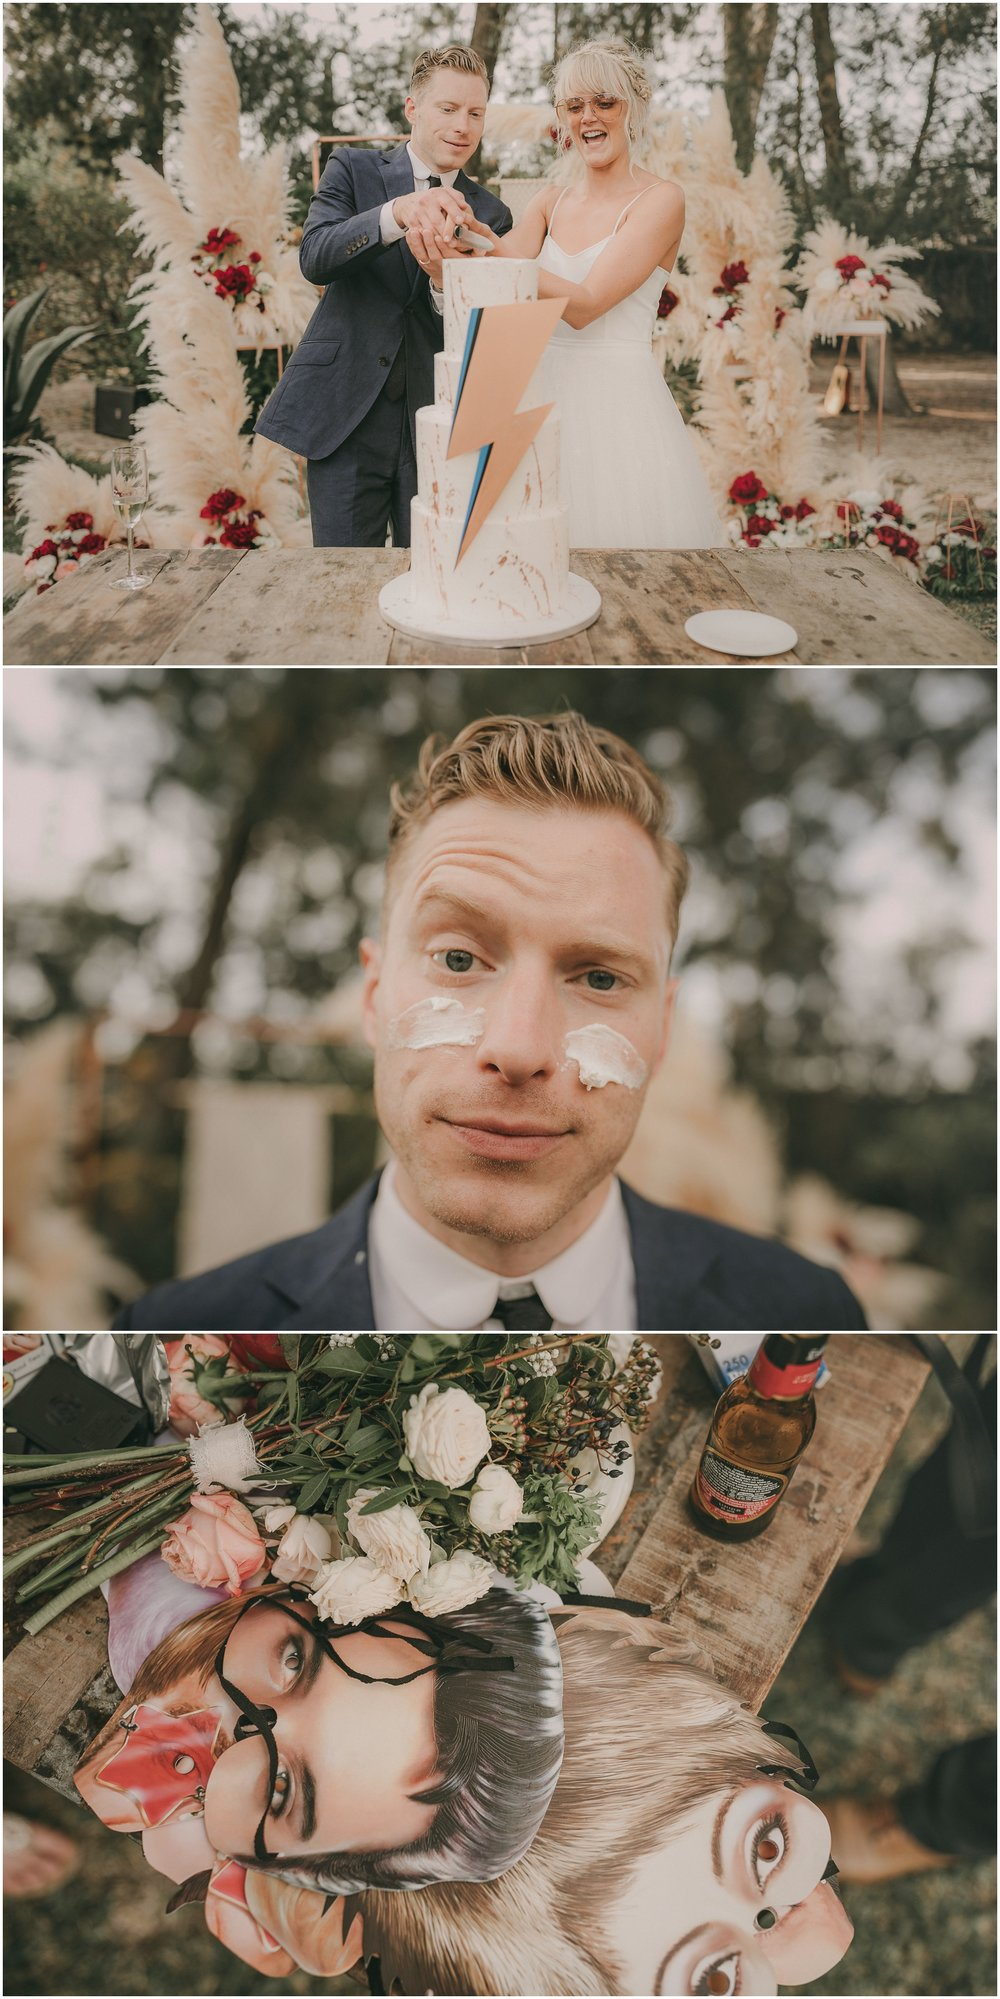 Emily & Joseph London wedding  by Pablo Laguia 218.JPG